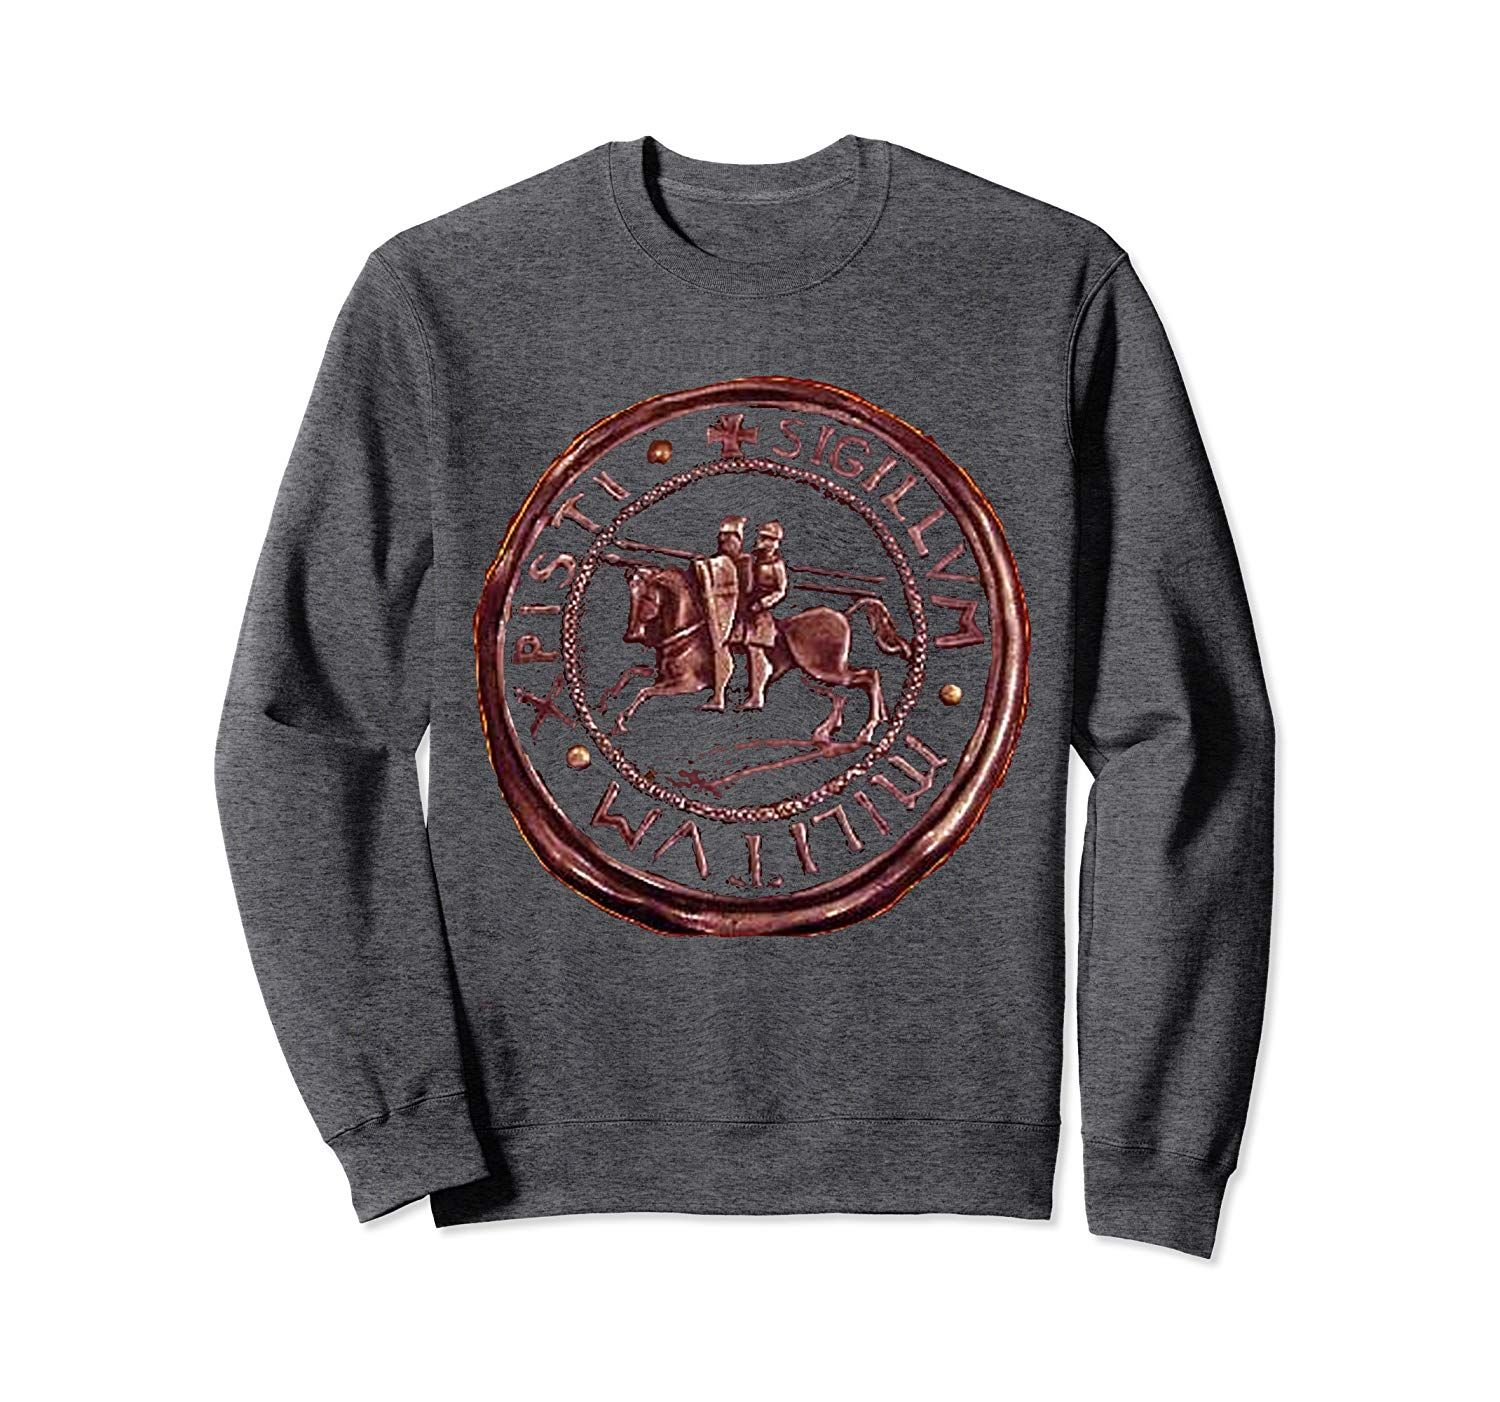 Templar Knight Seal Medieval Soldiers Of Christ's Army Logo Sweatshirt